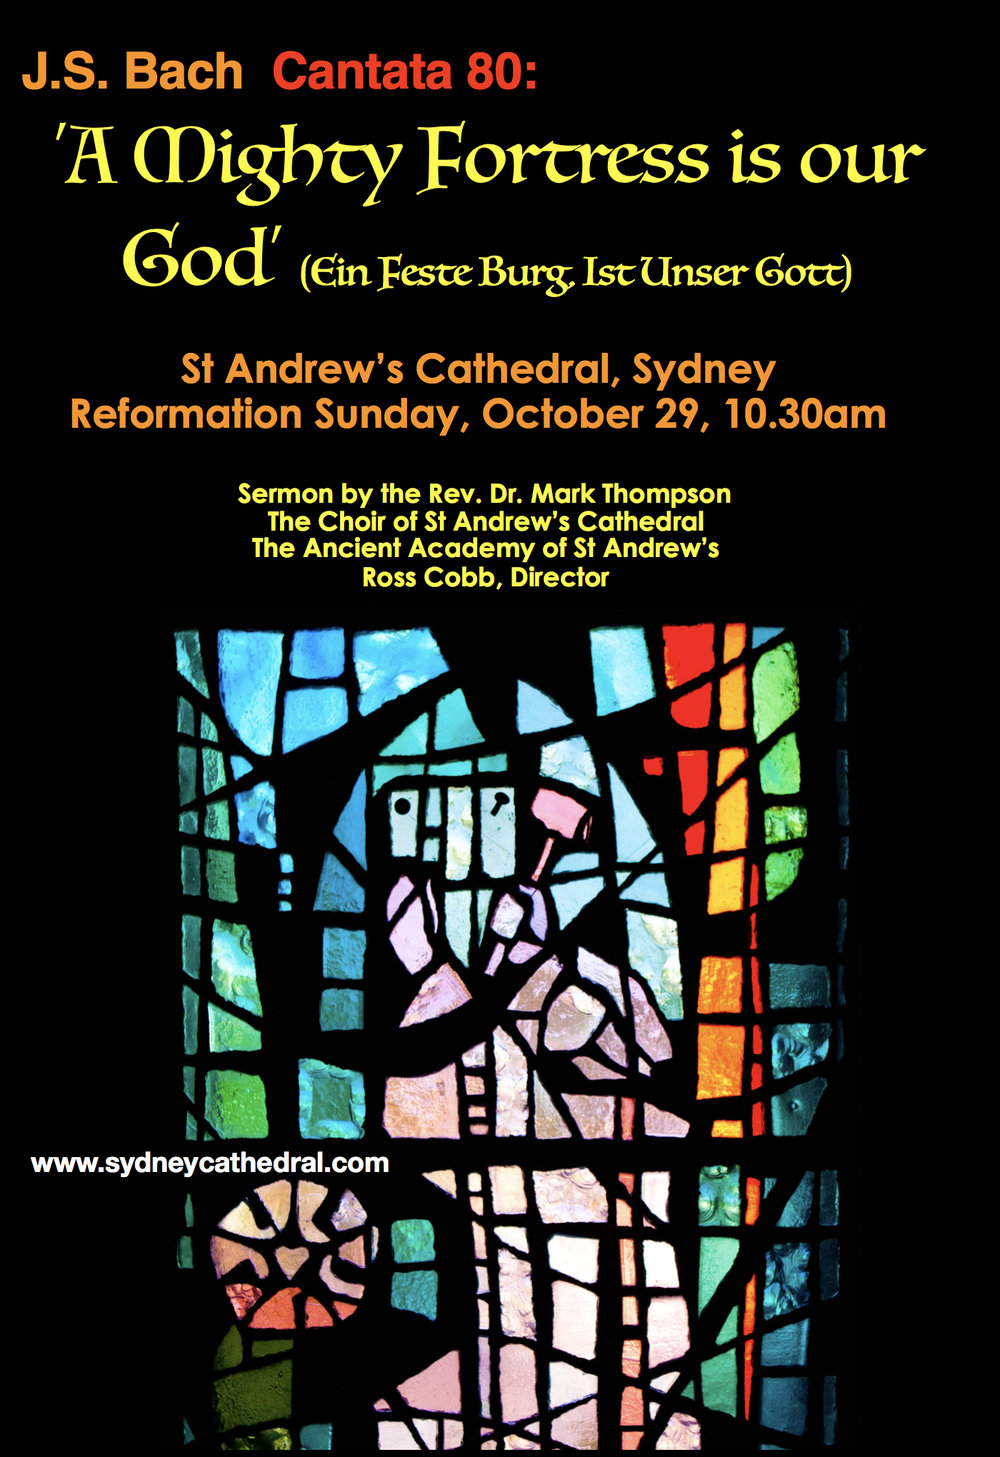 Reformation 500Sunday 29 October, 10.30am - As the world celebrates the 500th anniversary of the Reformation, St Andrew's Cathedral marks this extraordinary day on Reformation Sunday-29th October- the day the church marks 500 years since Martin Luther nailed his 95 thesis to the Wittenberg church door.During our 10.30 service the Cathedral Choir of boys and men, and international soloists, Penelope Mills: soprano, Jonathan Borg, countertenor, Michael Butchard: tenor, and Christopher Richardson: bass,will join with our historical-instrument orchestra in bring JS Bach's monumental celebration cantata no. 80: 'A Mighty Fortress' written for Reformation Sunday itself, with words by Martin Luther.The sermon will be given by Australia's foremost expert on the Reformation, the Rev. Dr Mark Thompson, Principal of Moore College, Sydney.A feast for the heart and for the mind, and within the context of our morning service. All welcome!